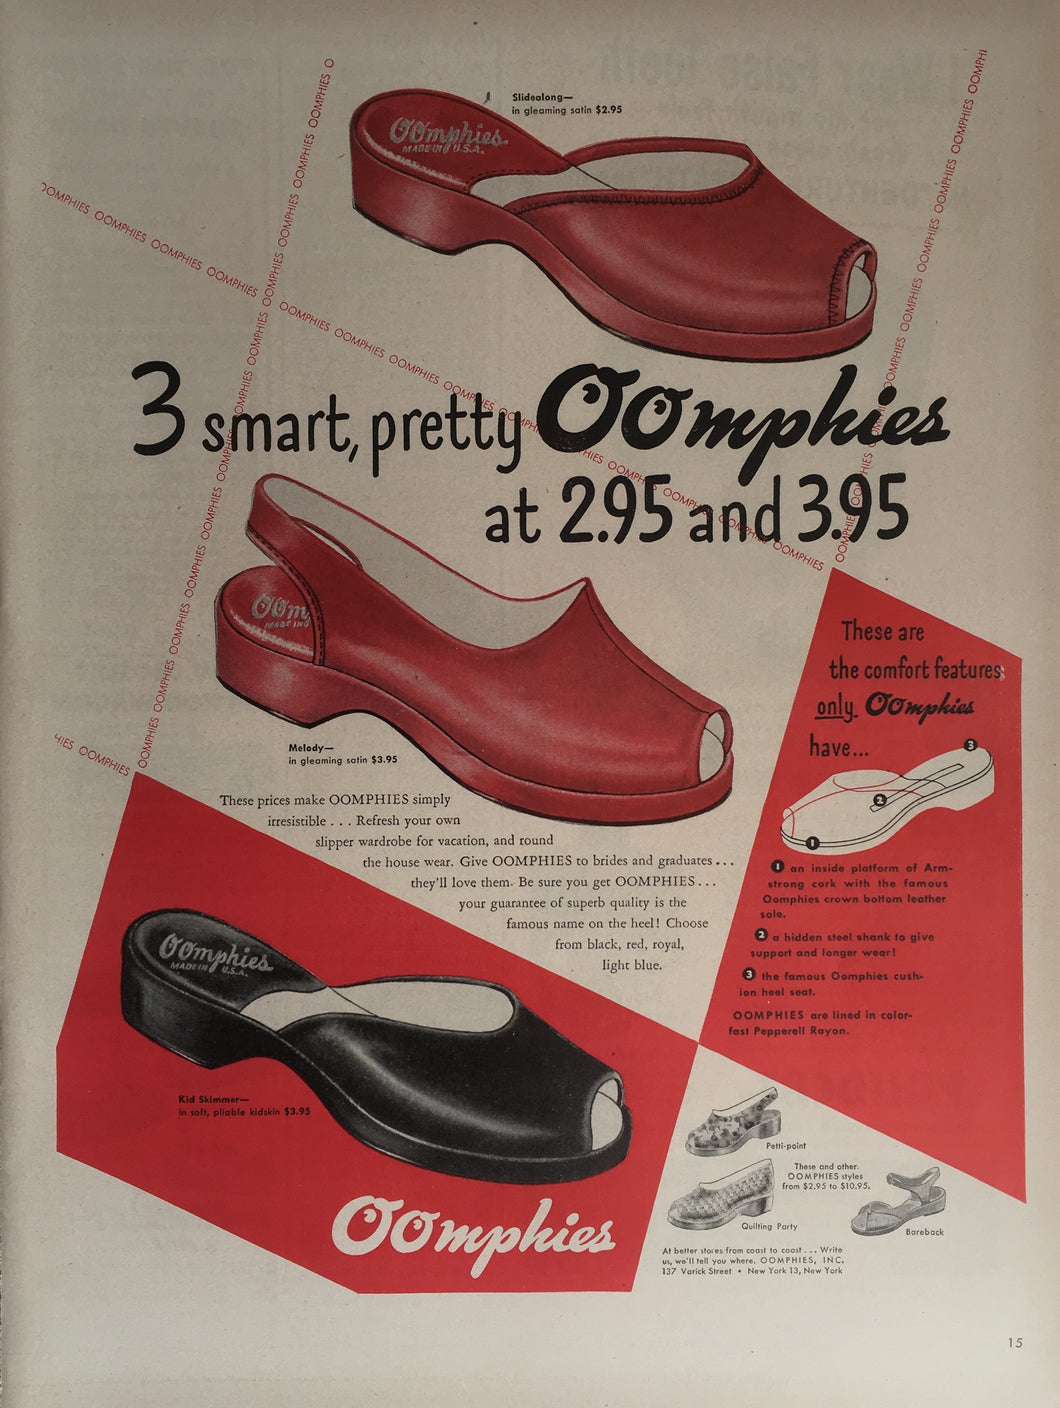 Vintage Oomphies Women's Shoes Advertisement